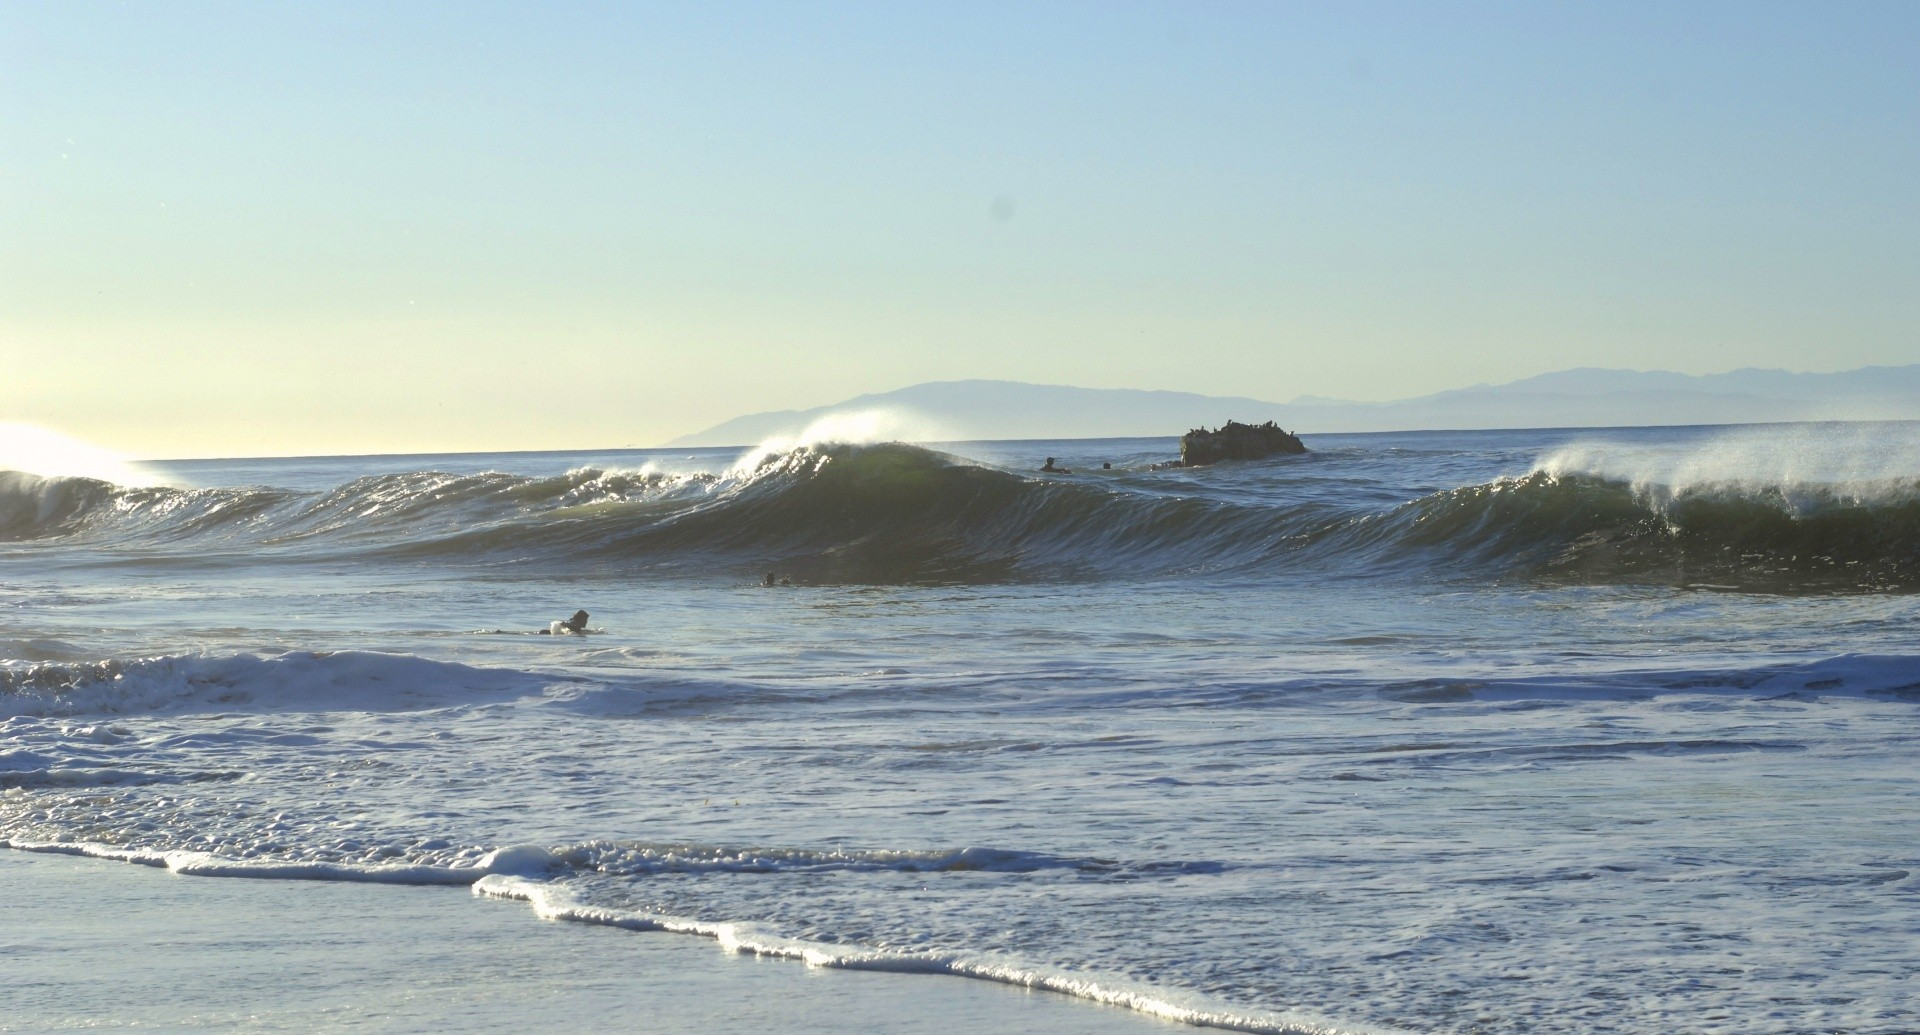 user291645's photo of Steamer Lane